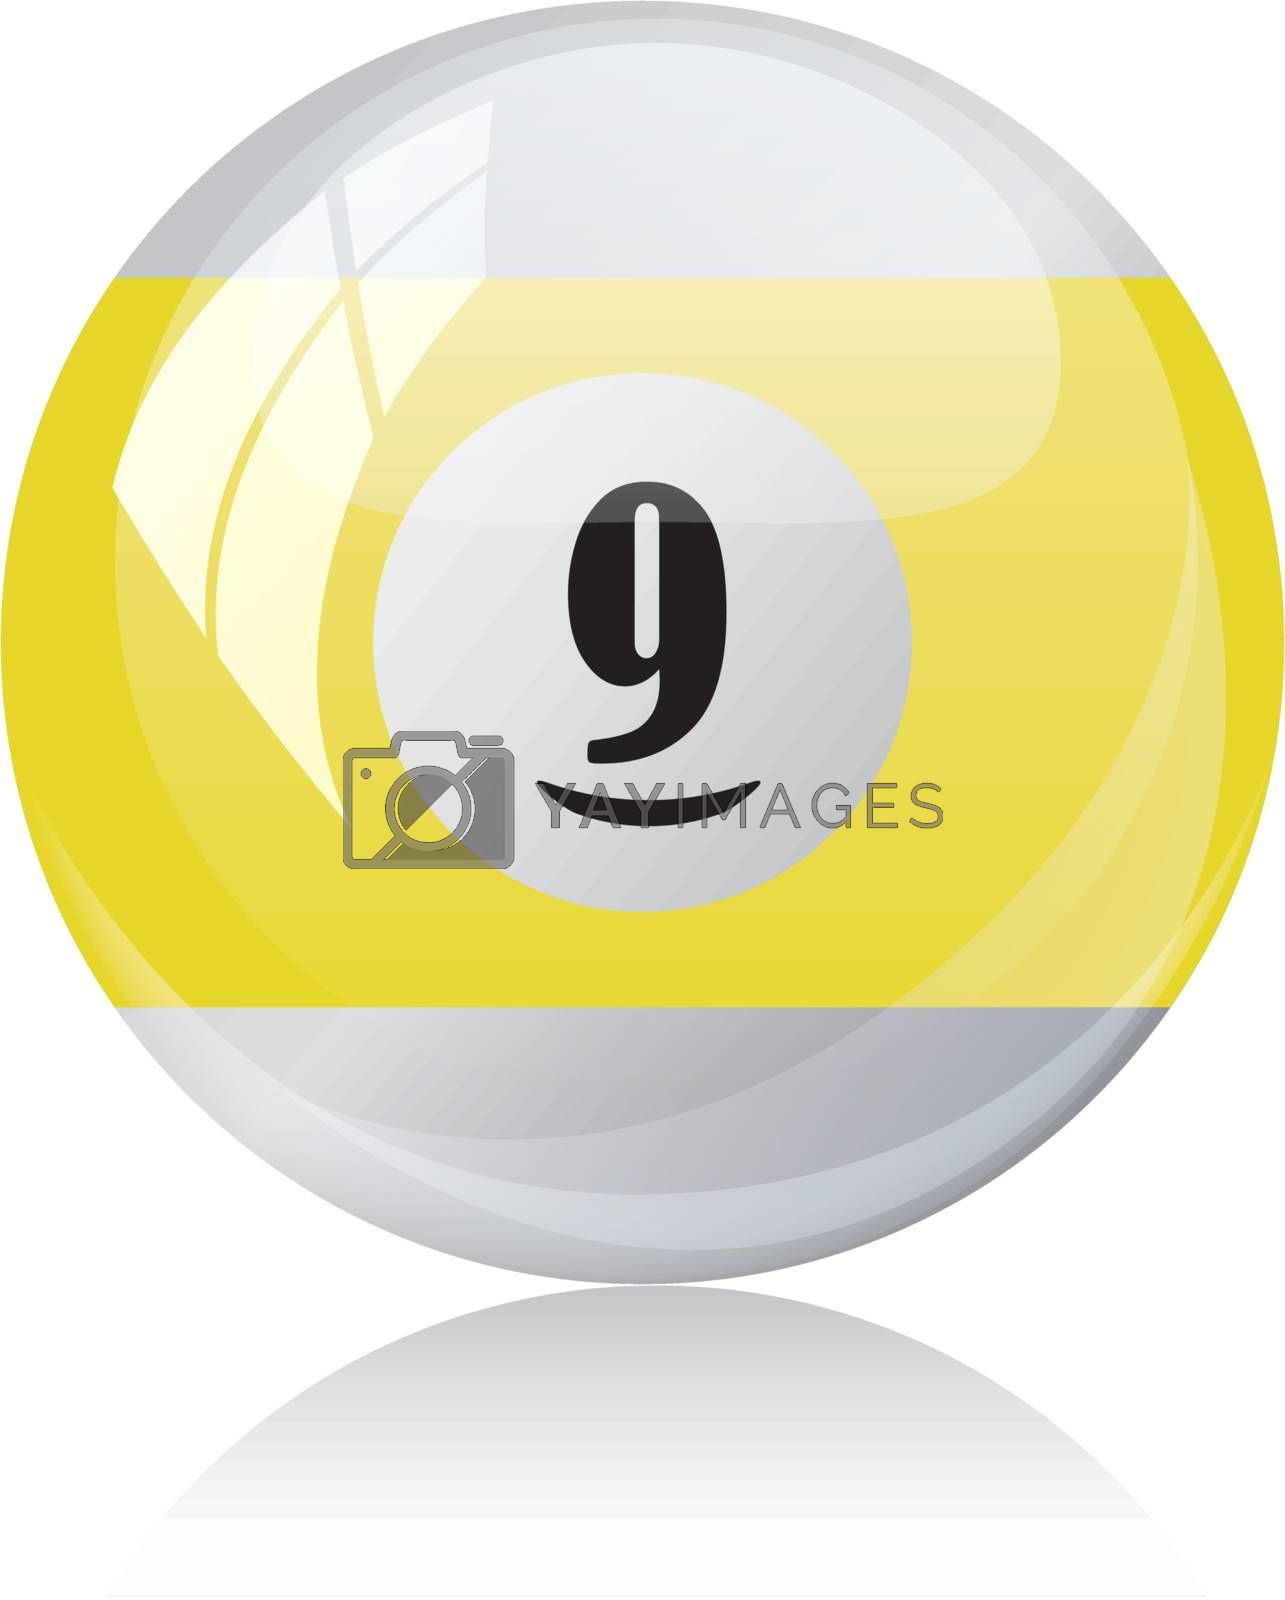 Vector illustration of a isolated glossy - nine, half-yellow - pool ball against white background.